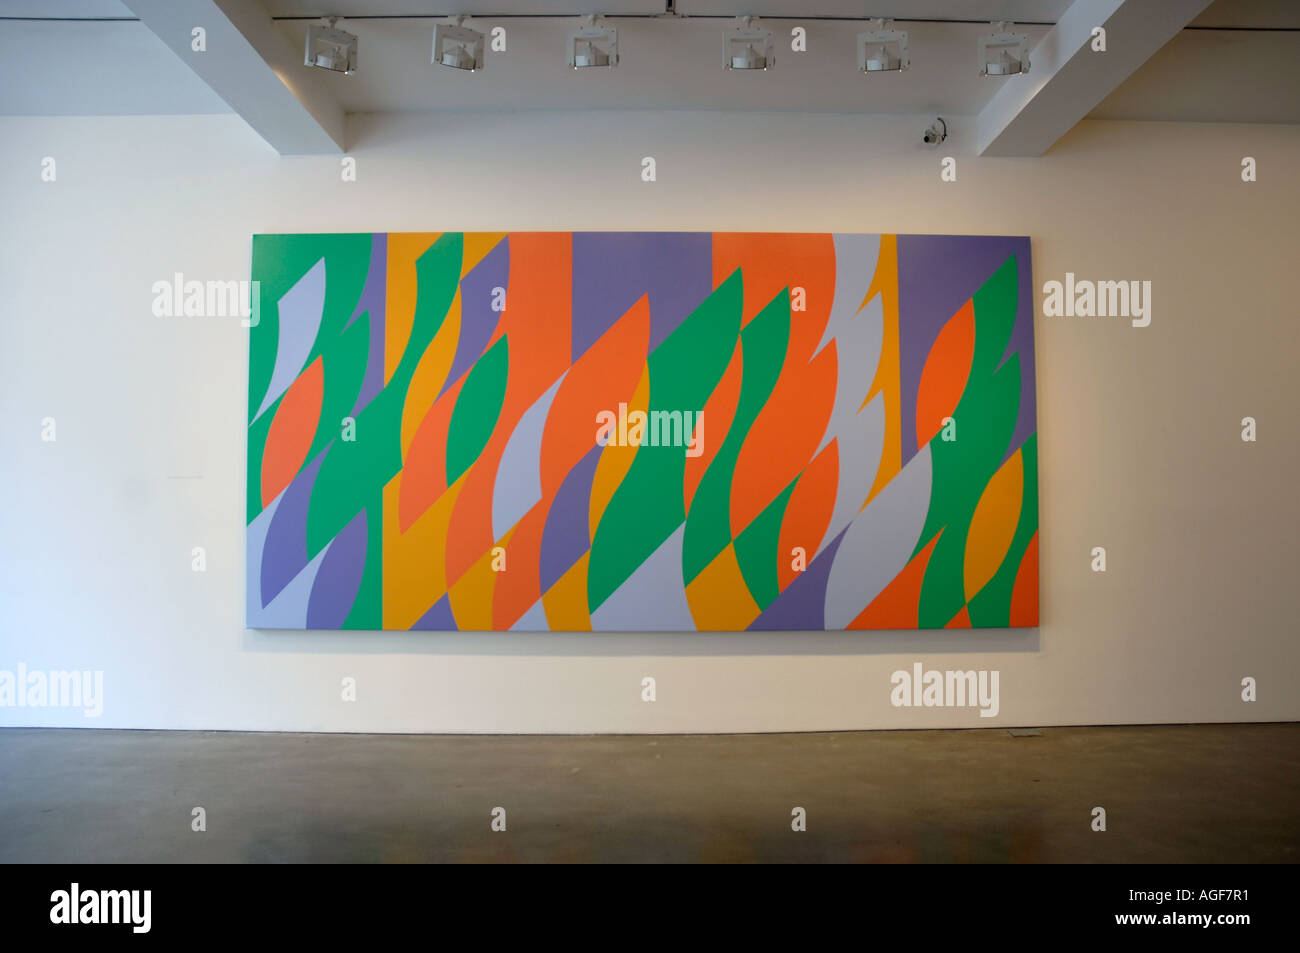 Bridget Riley painting in an art gallery - Stock Image